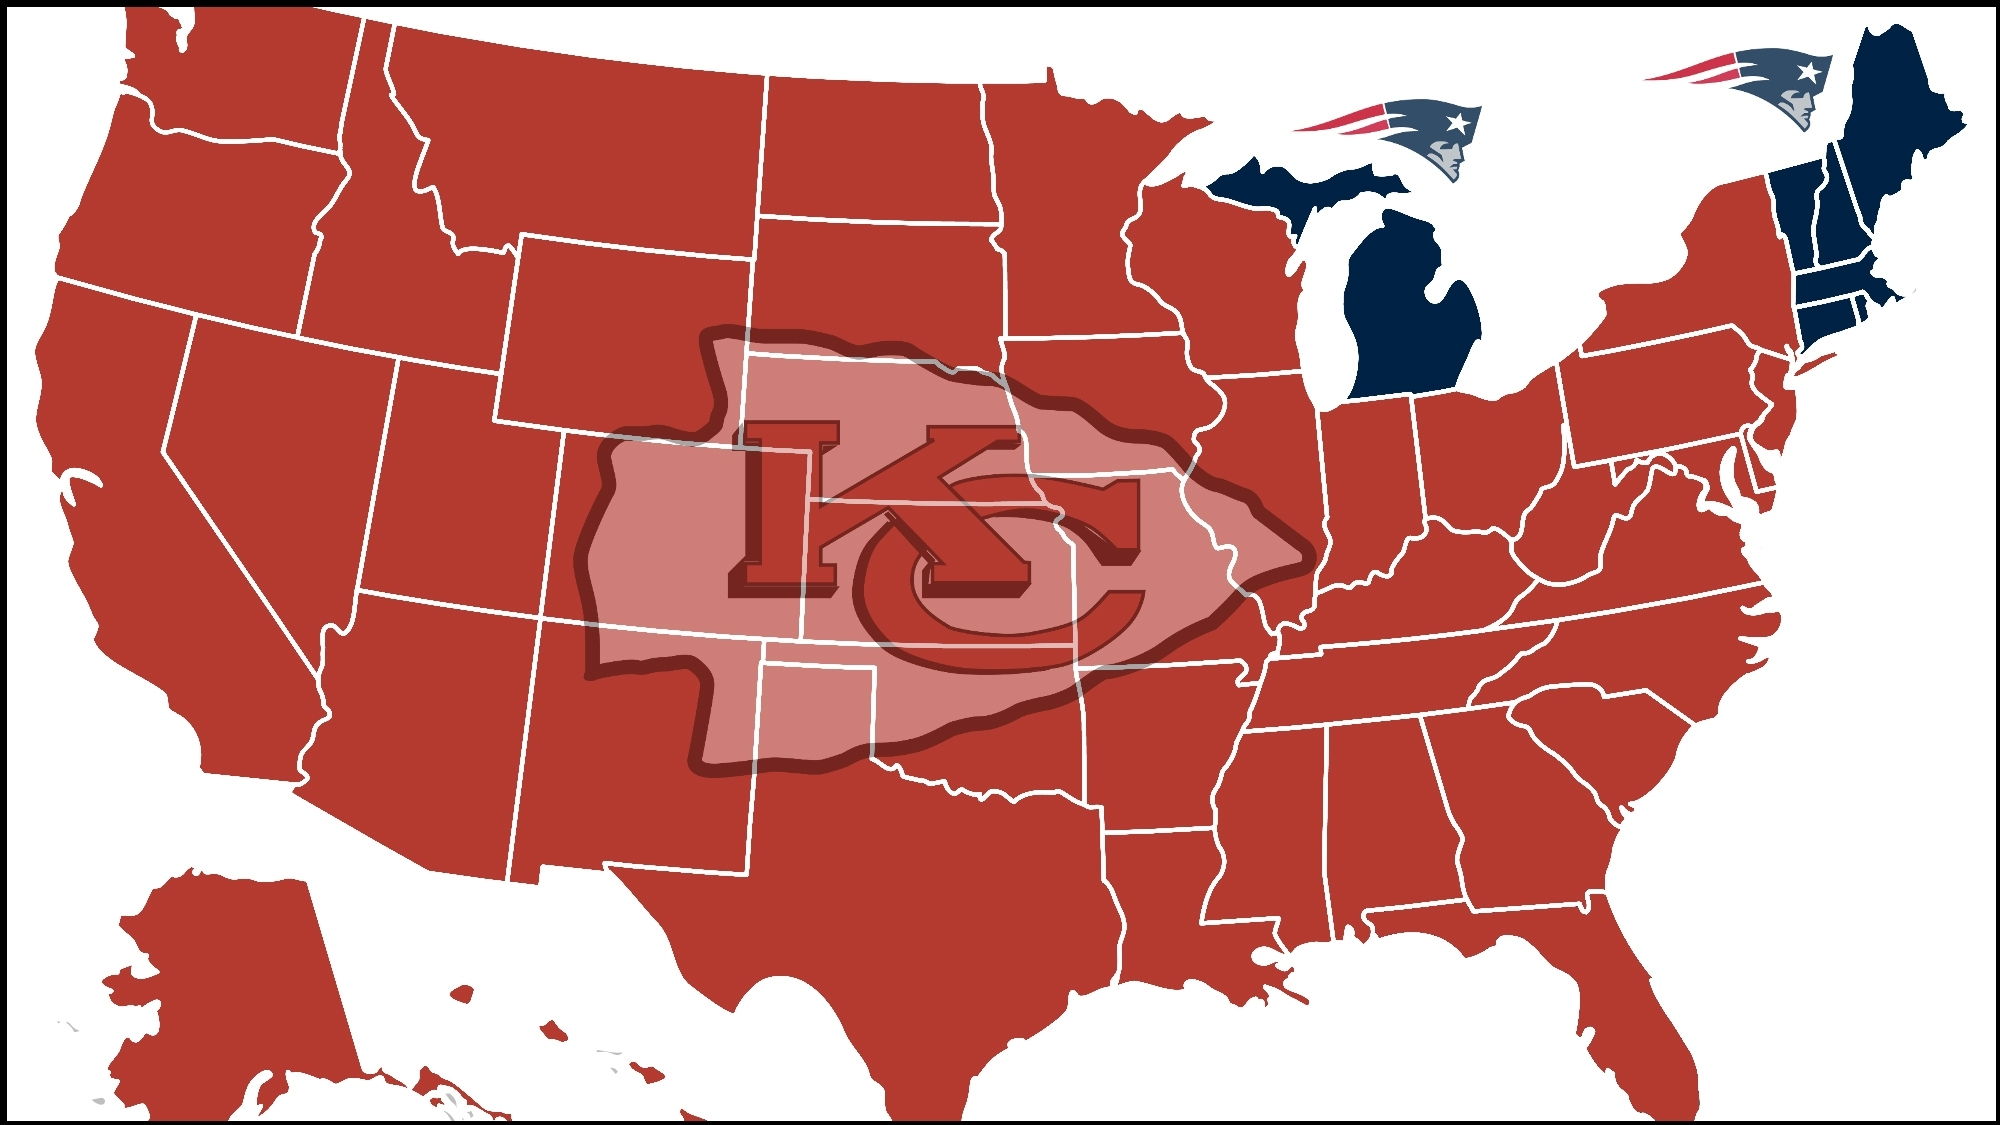 Almost Entire Country Will Be Rooting Against Patriots In inside Map Of Rooting For Super Bowl